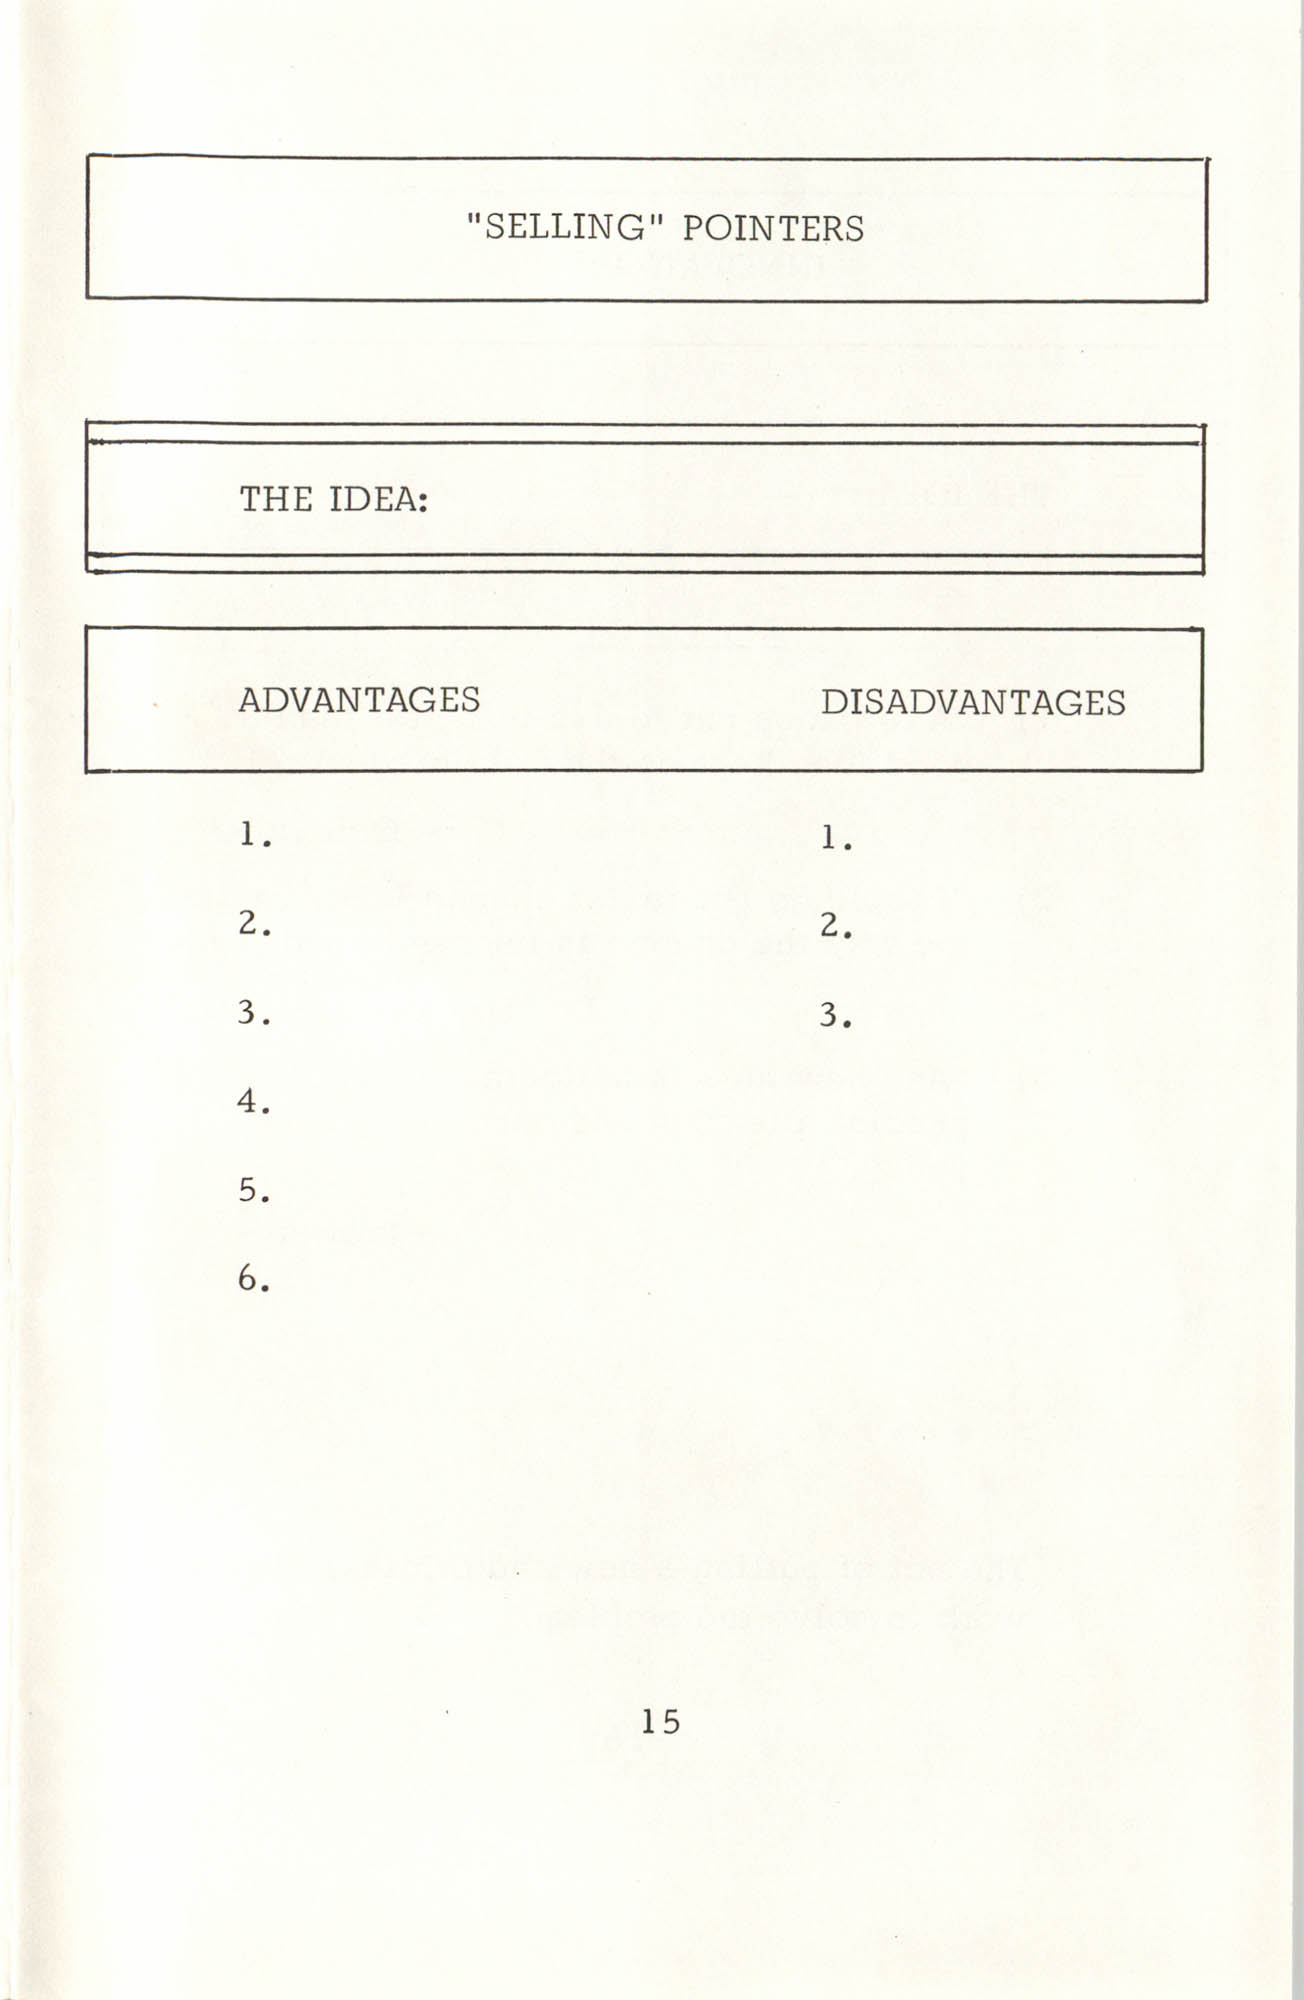 Creative Thinking Work Sheets, Page 15